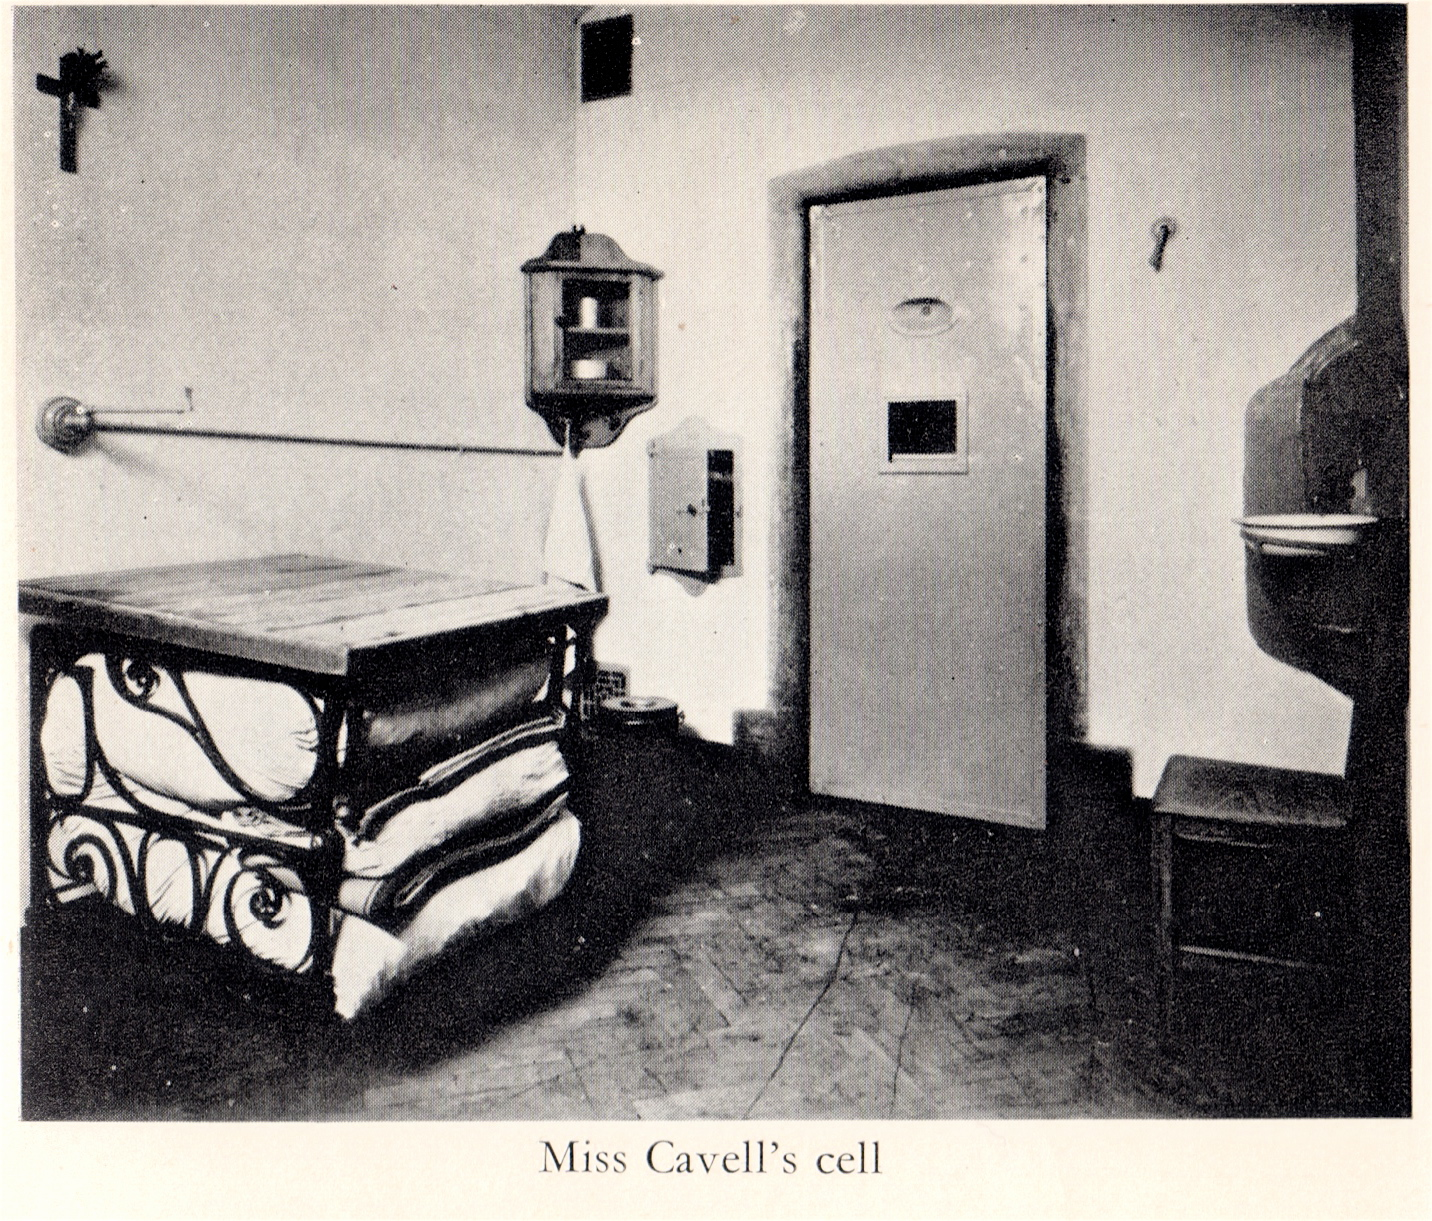 Edith Cavell's Prison Cell